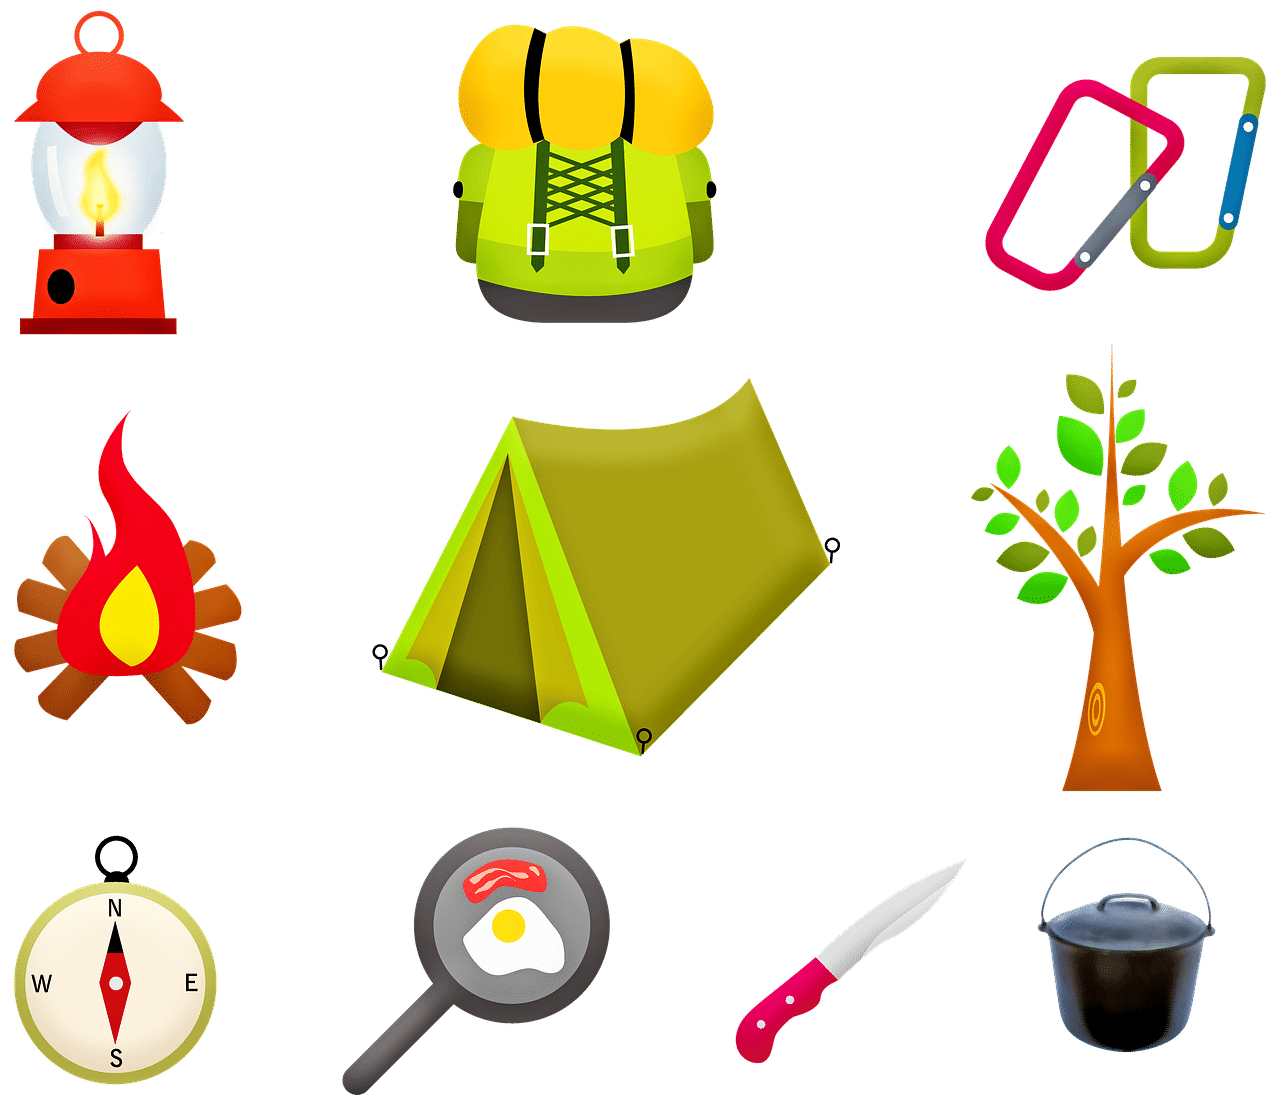 camping gears light, a backpack, fire, tent, tree, compass, pan, knife